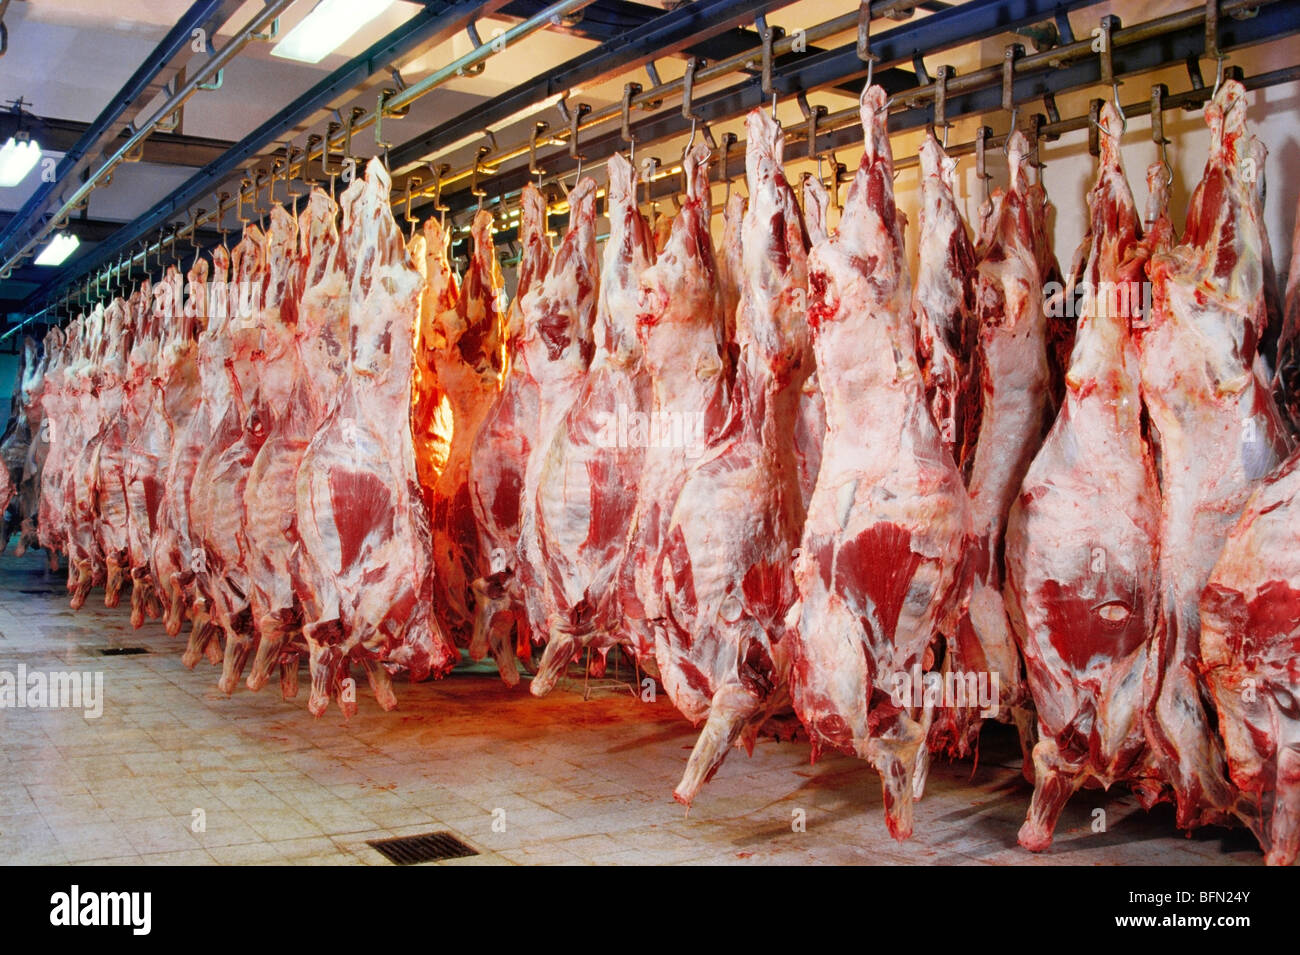 Slaughter house ; India -hma 61314 - Stock Image